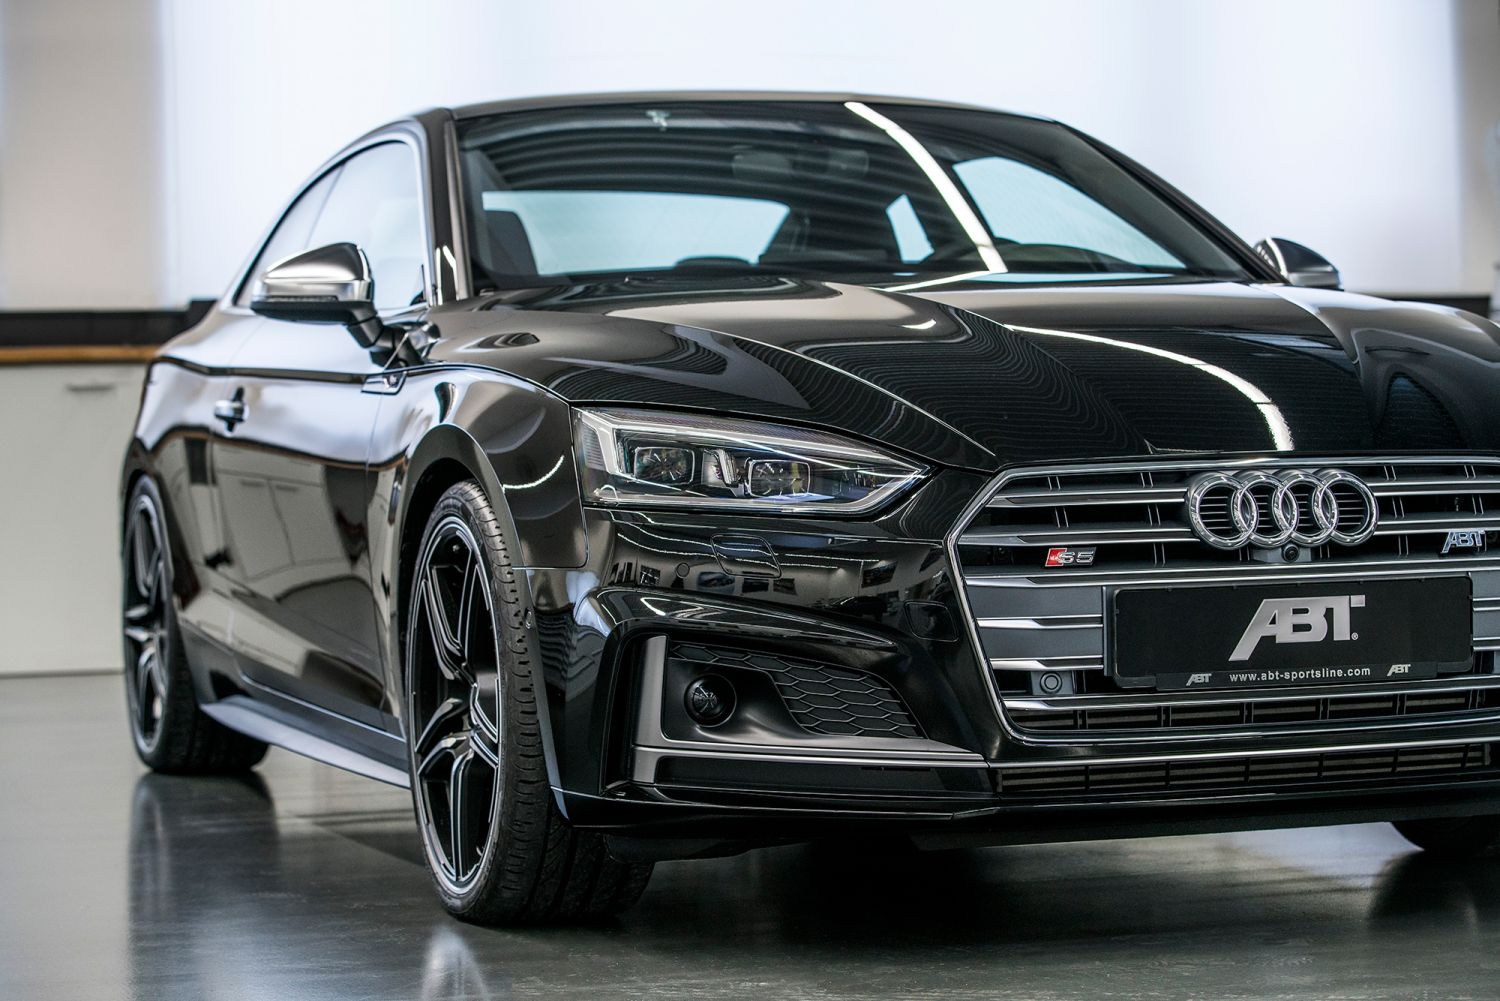 abt sportsline brings 20 more dynamism to 2018 audi s5. Black Bedroom Furniture Sets. Home Design Ideas